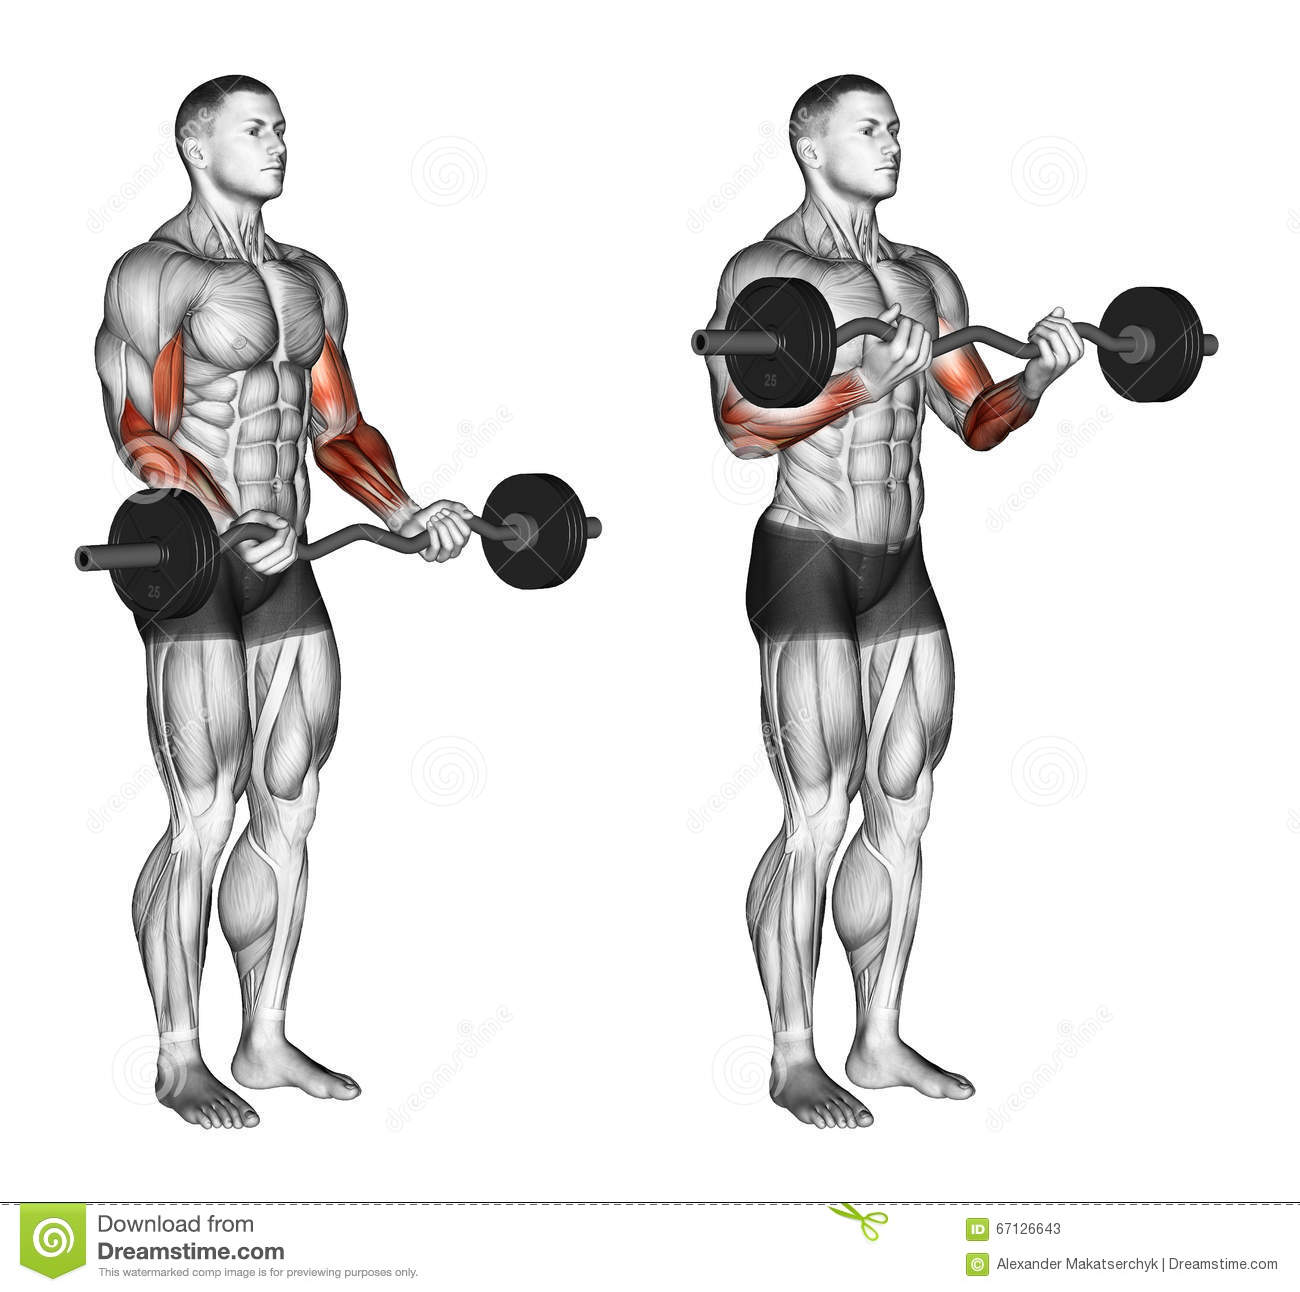 Foam Roll It Band furthermore  as well Muscular System Diagram likewise Sai Works Fitnessequipmentgymequipmentmanufacturerinindia as well Poil. on muscle s